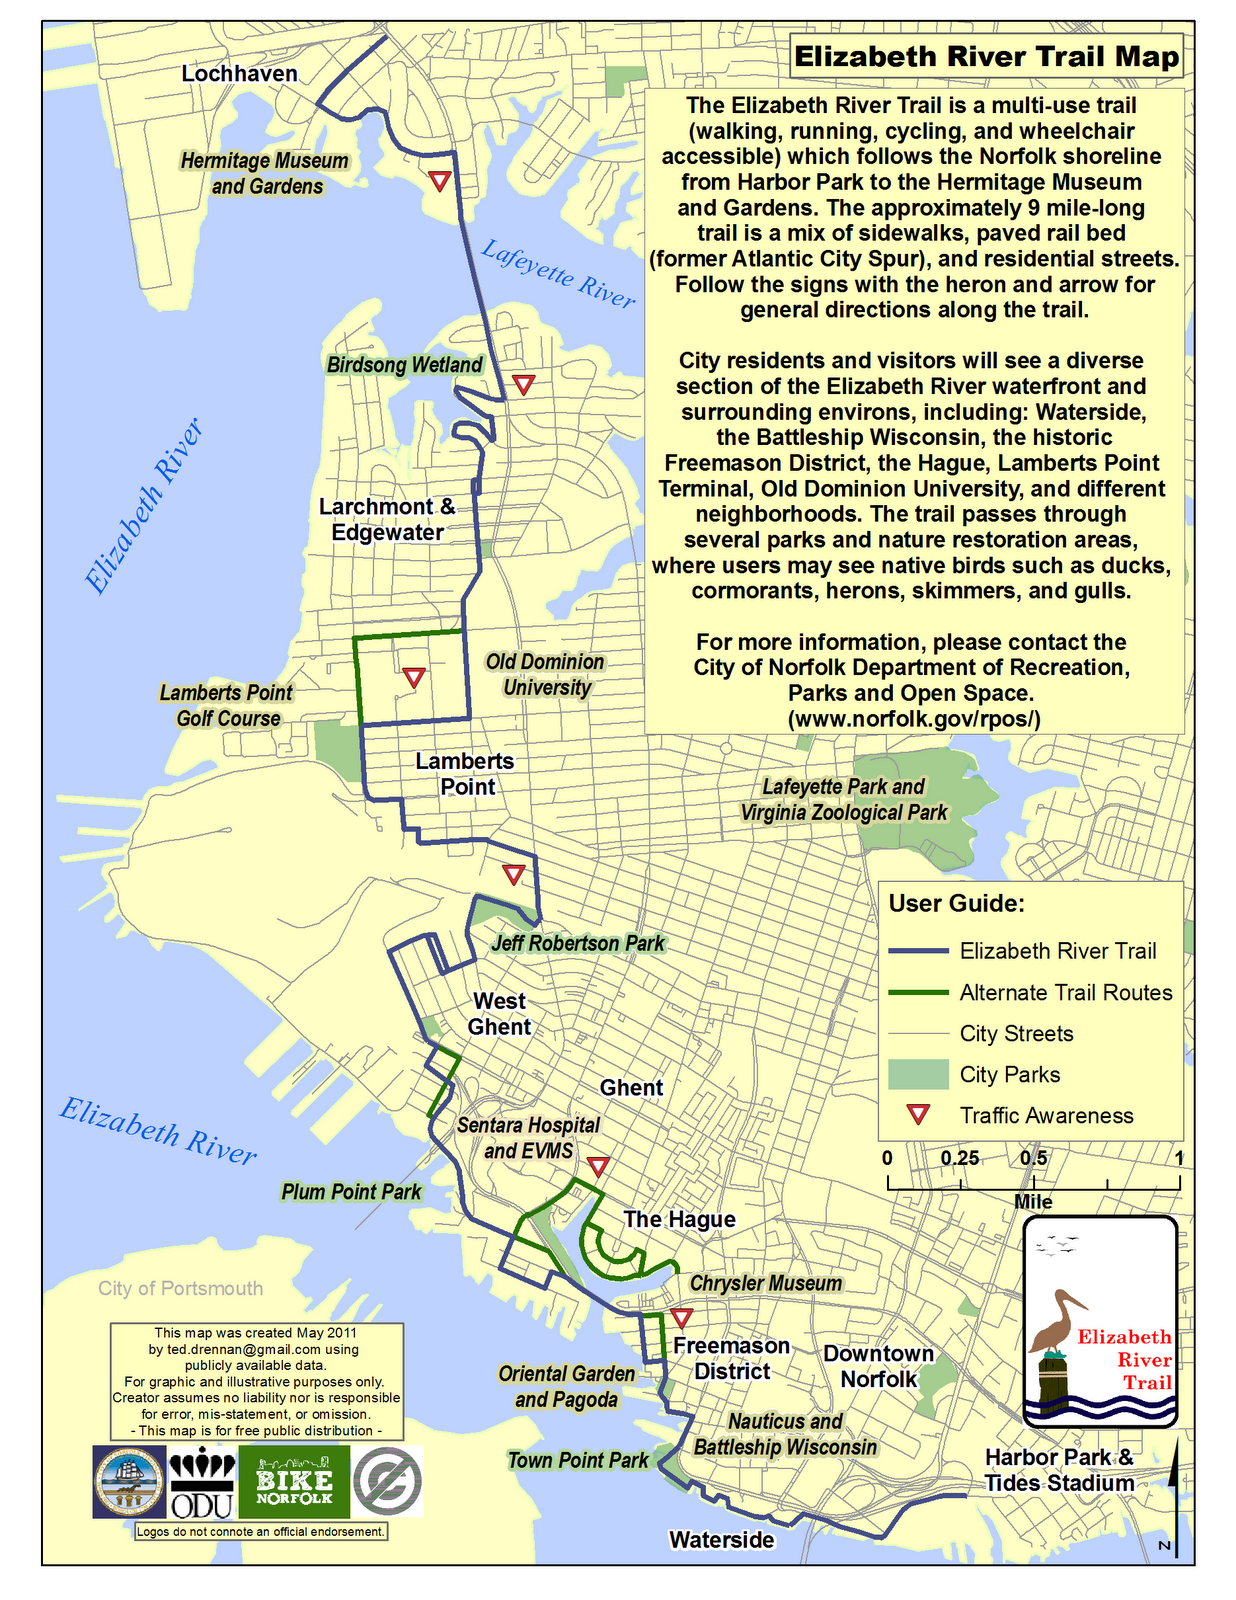 Elizabeth River trail map, Norfolk, VA | My Inner Geek | Pinterest ...